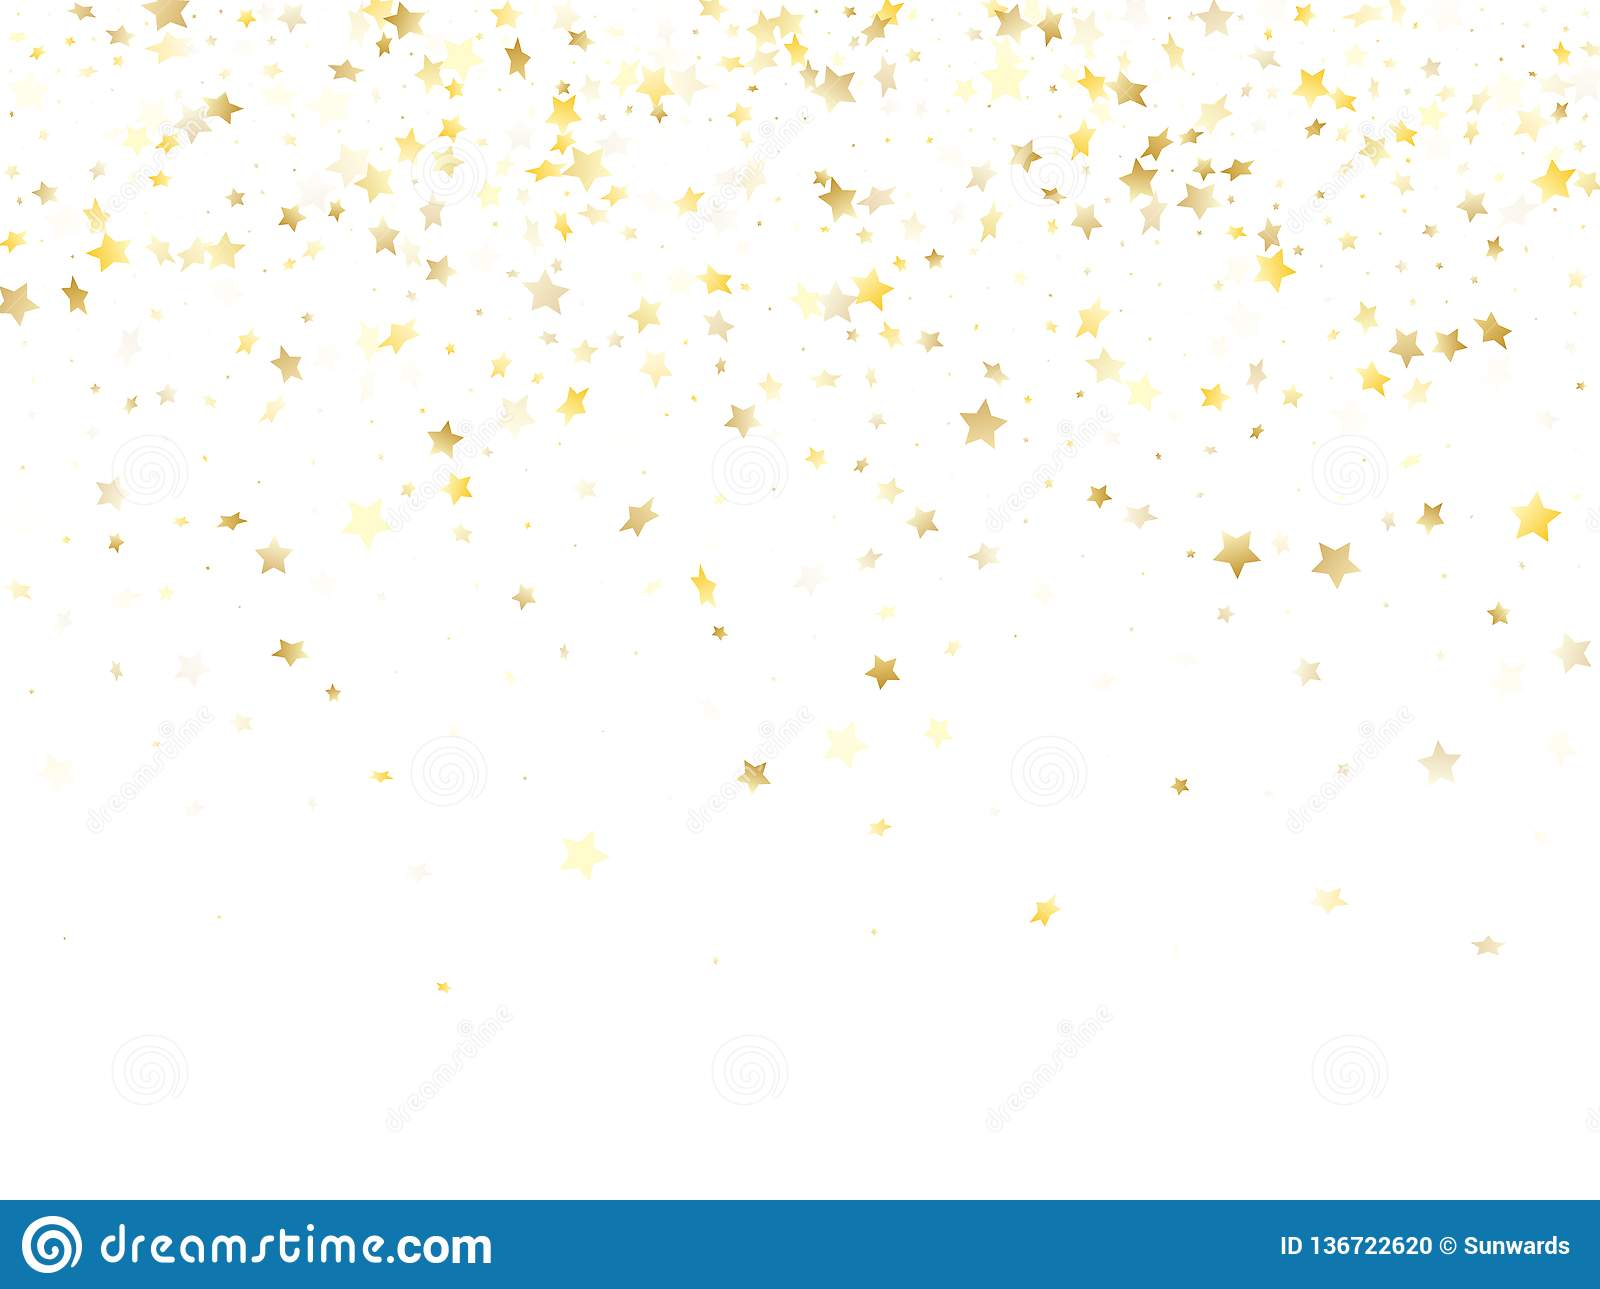 Magic Gold Sparkle Texture Vector Star Background  Stock Vector